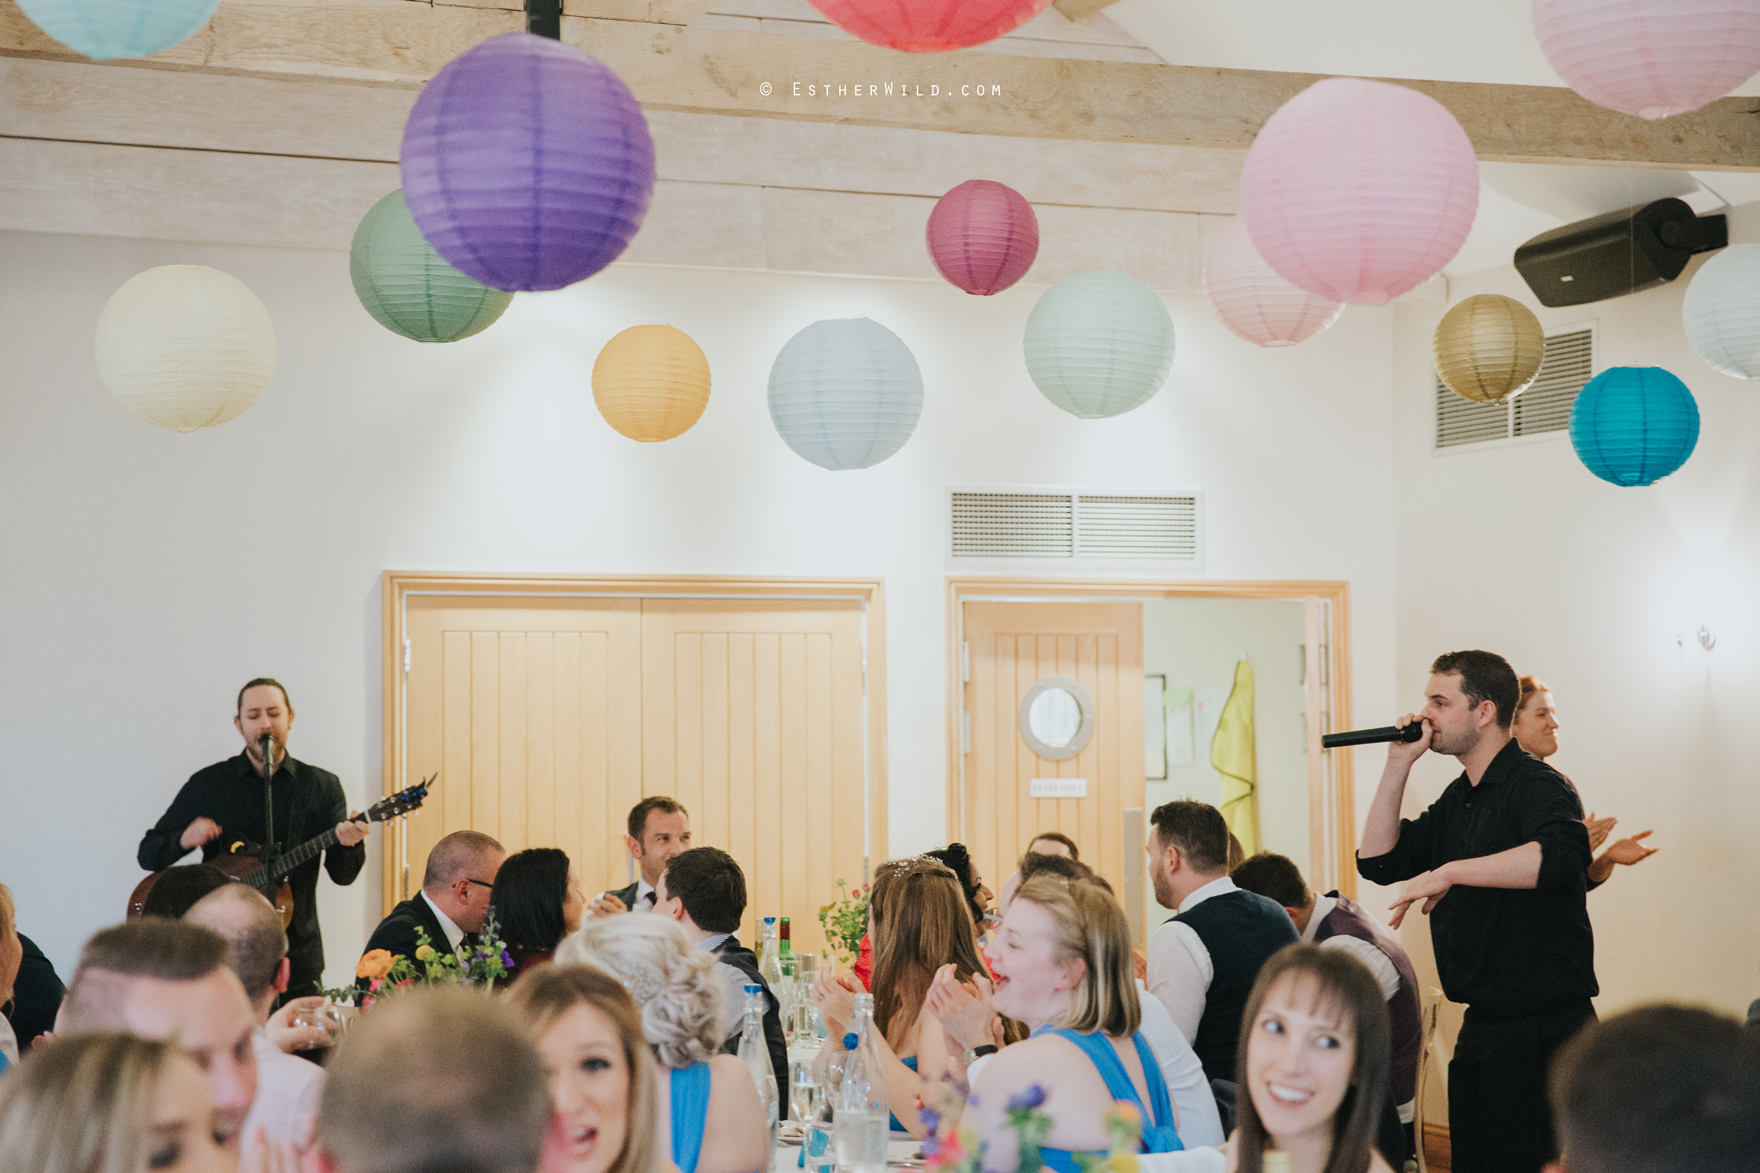 The_BoatHouse_Wedding_Venue_Ormesby_Norfolk_Broads_Boat_Wedding_Photography_Esther_Wild_Photographer_IMG_2327.jpg